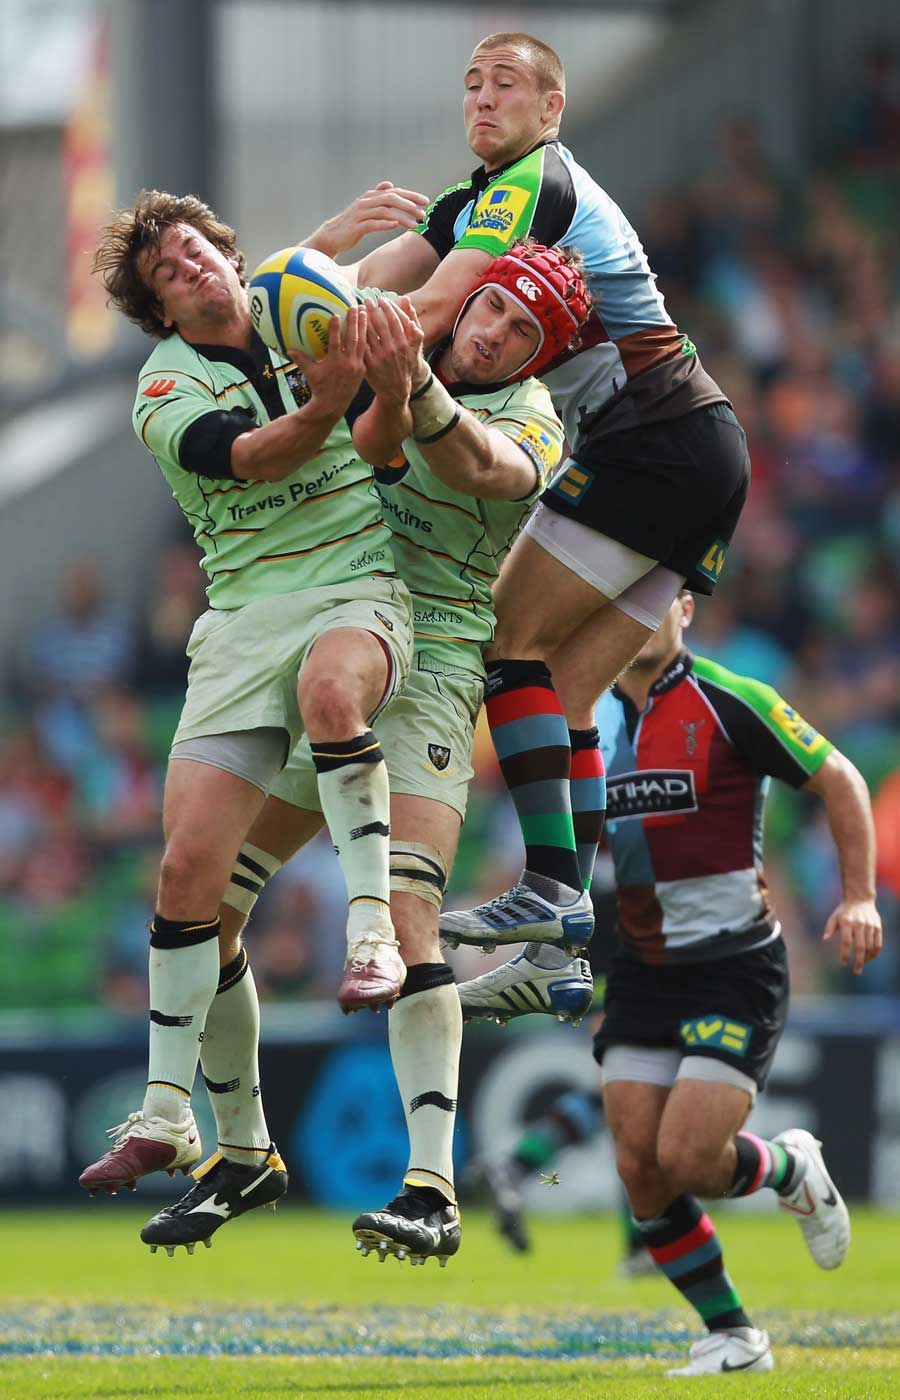 Harlequins' Mike Brown competes for a high ball with Saints' Lee Dickson and Christian Day